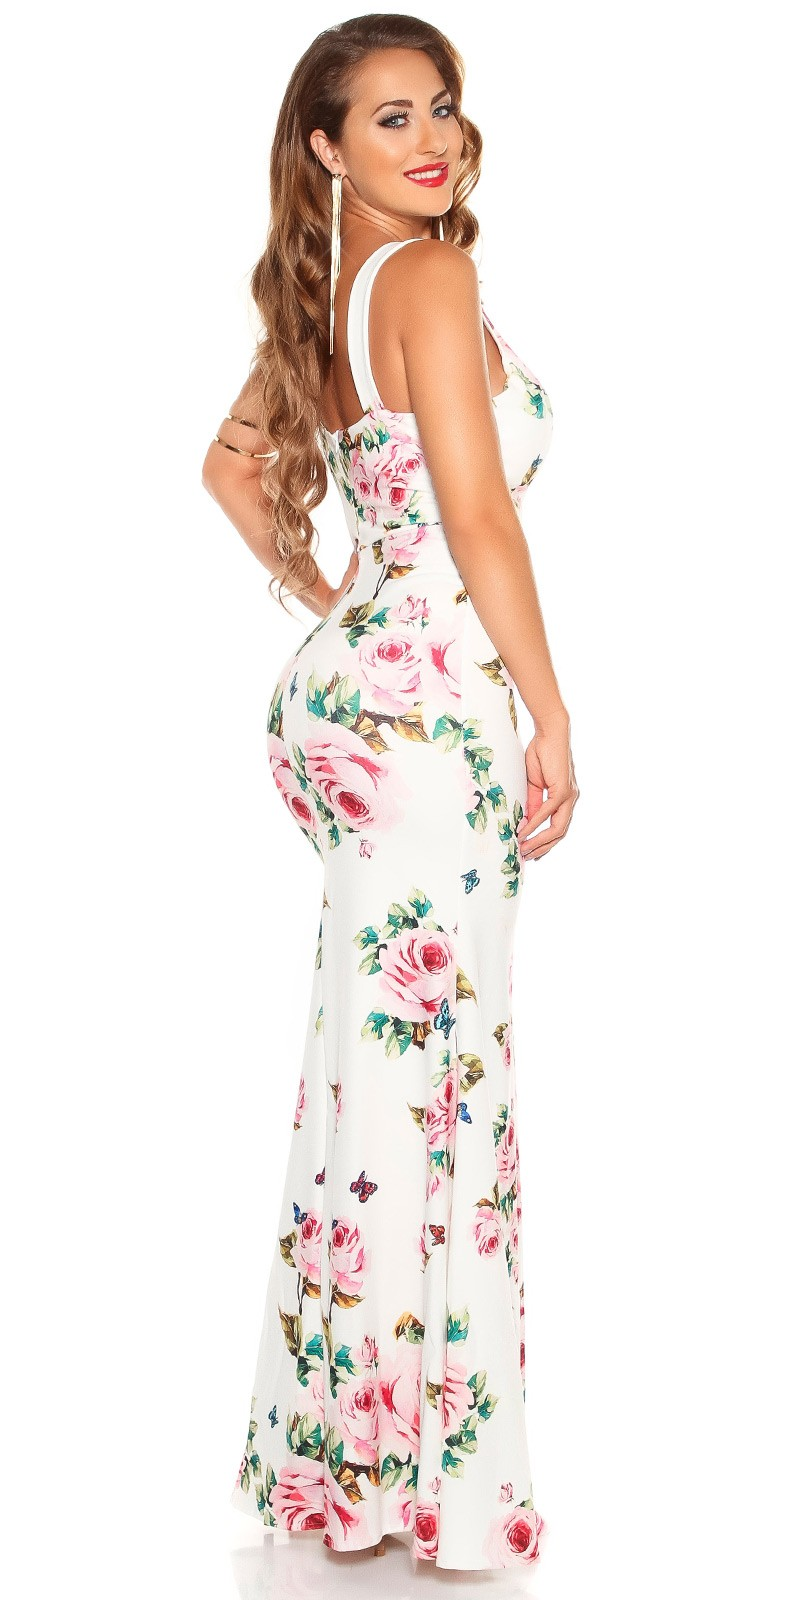 7b1d92e7b990 aaMaxidress with  Flower-Print  Color WHITE Size Einheitsgroesse 0000K2855 WEISS 18